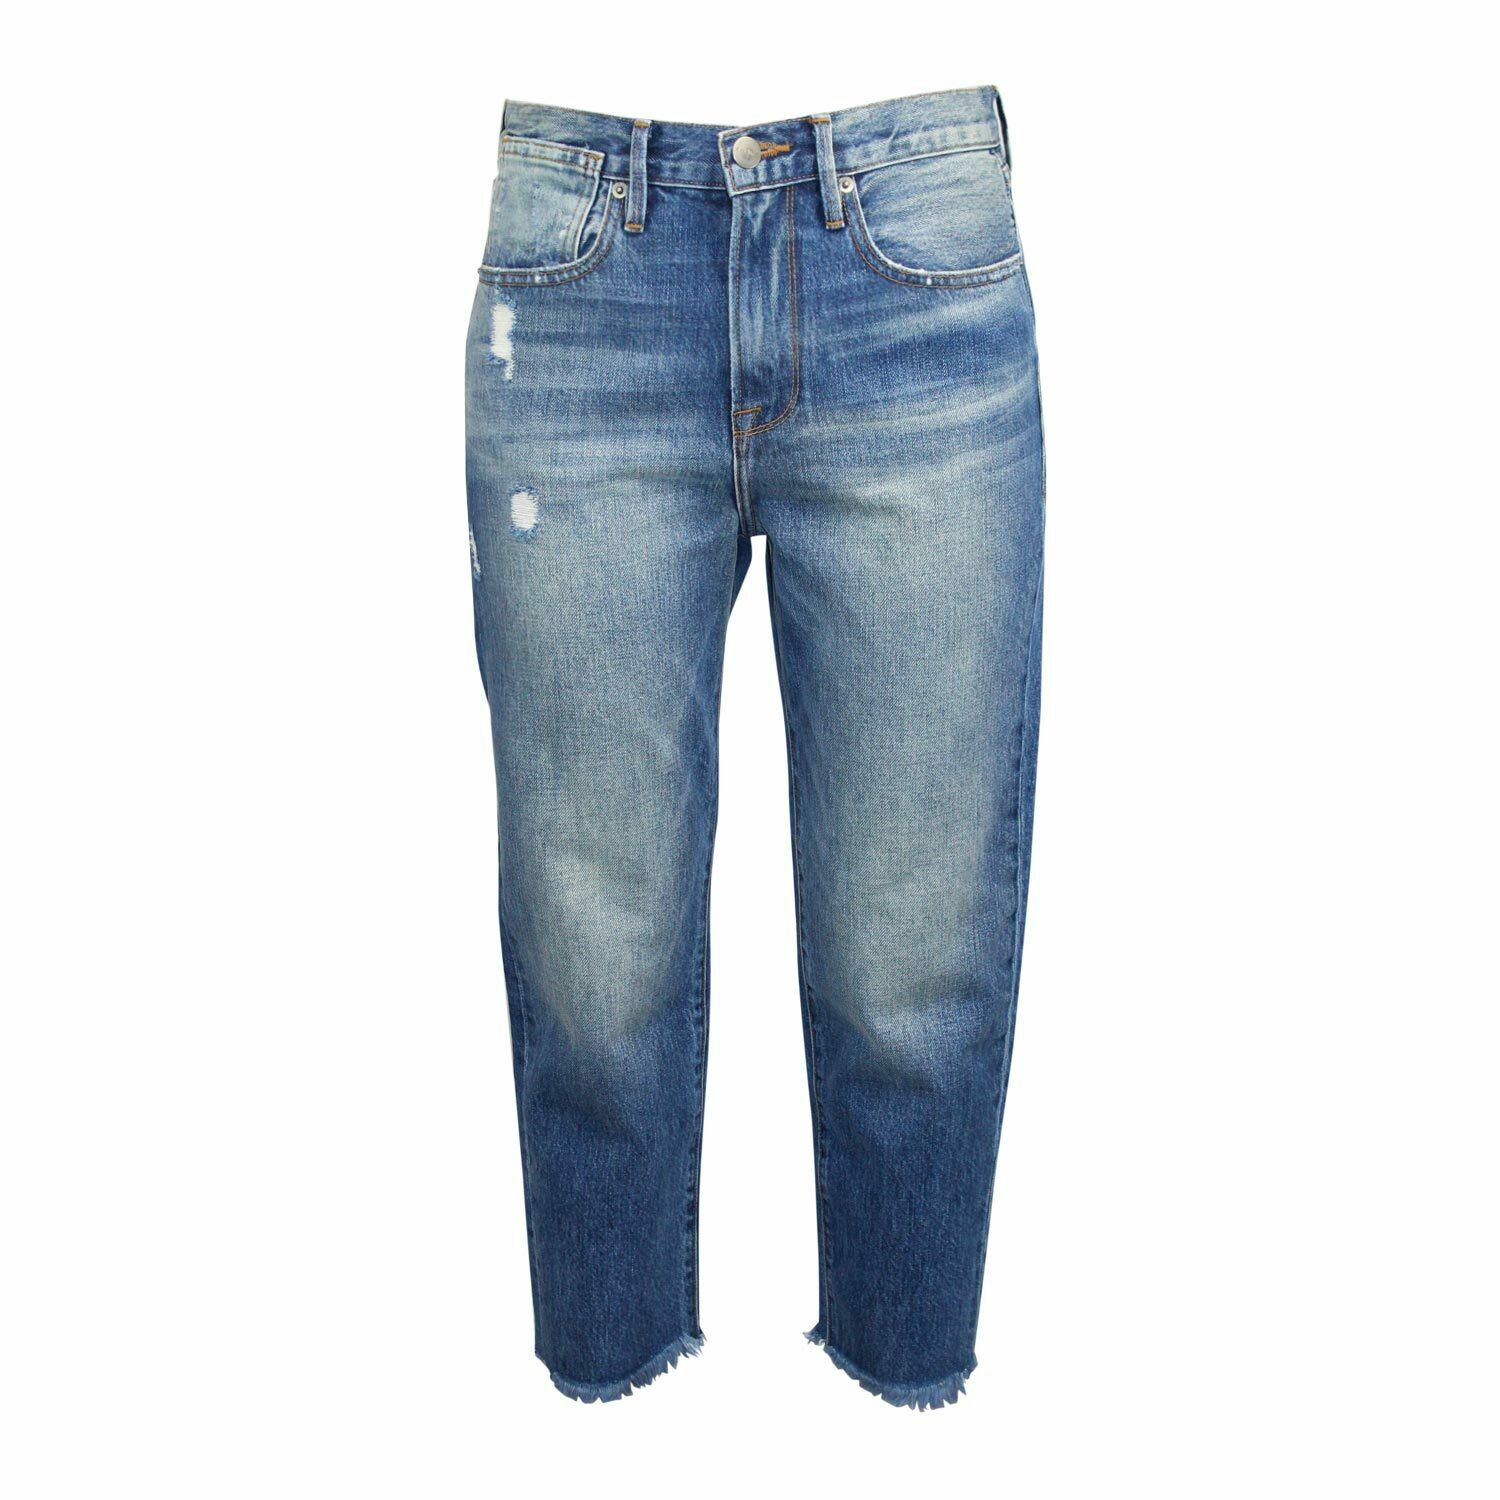 Frame New With Tags Le Stevie Crop Jeans - Harbor Harbor